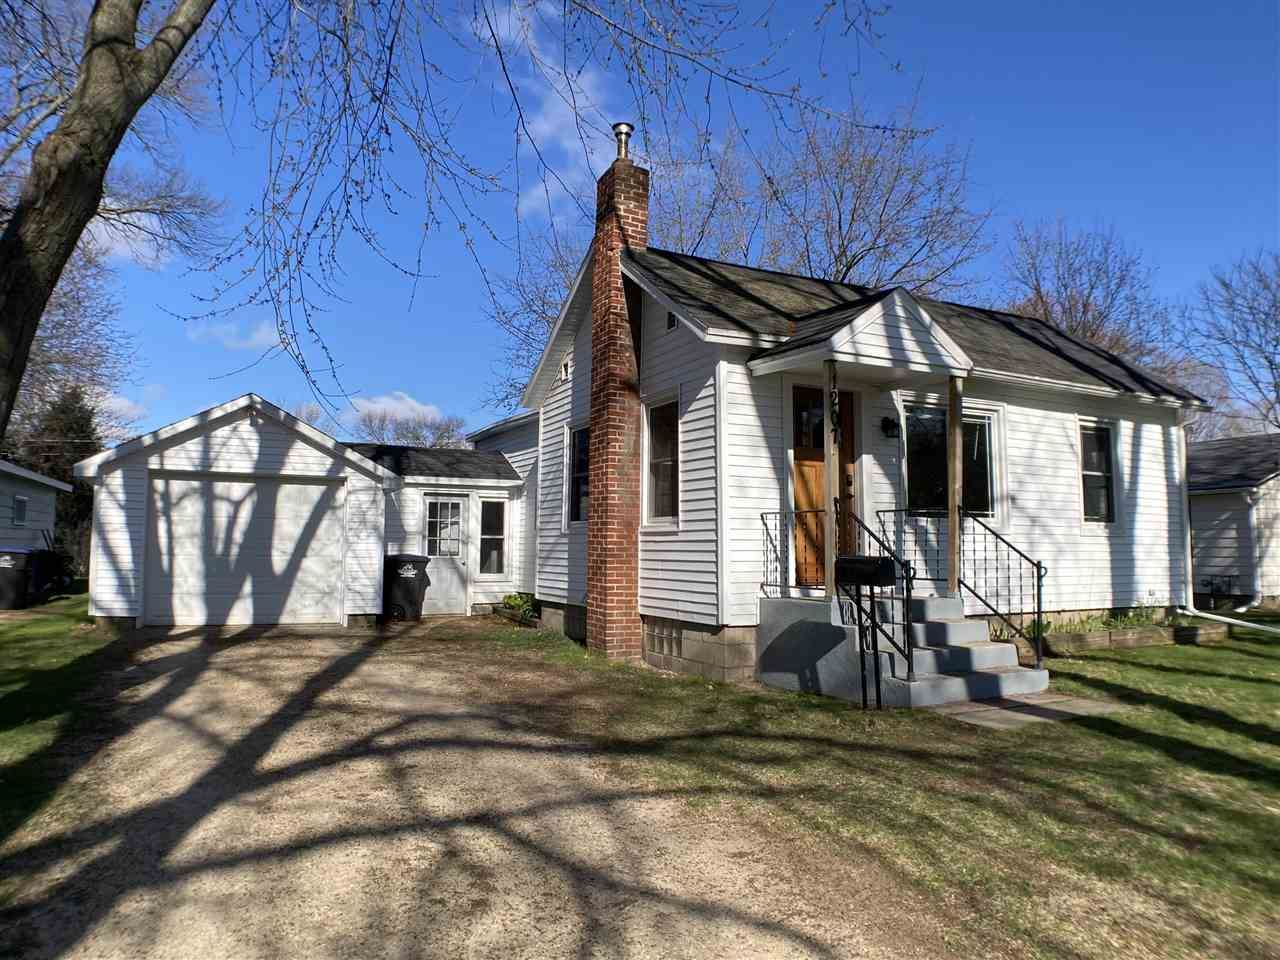 1207 S SMALLEY Street, Shawano, WI 54166 - MLS#: 50238723